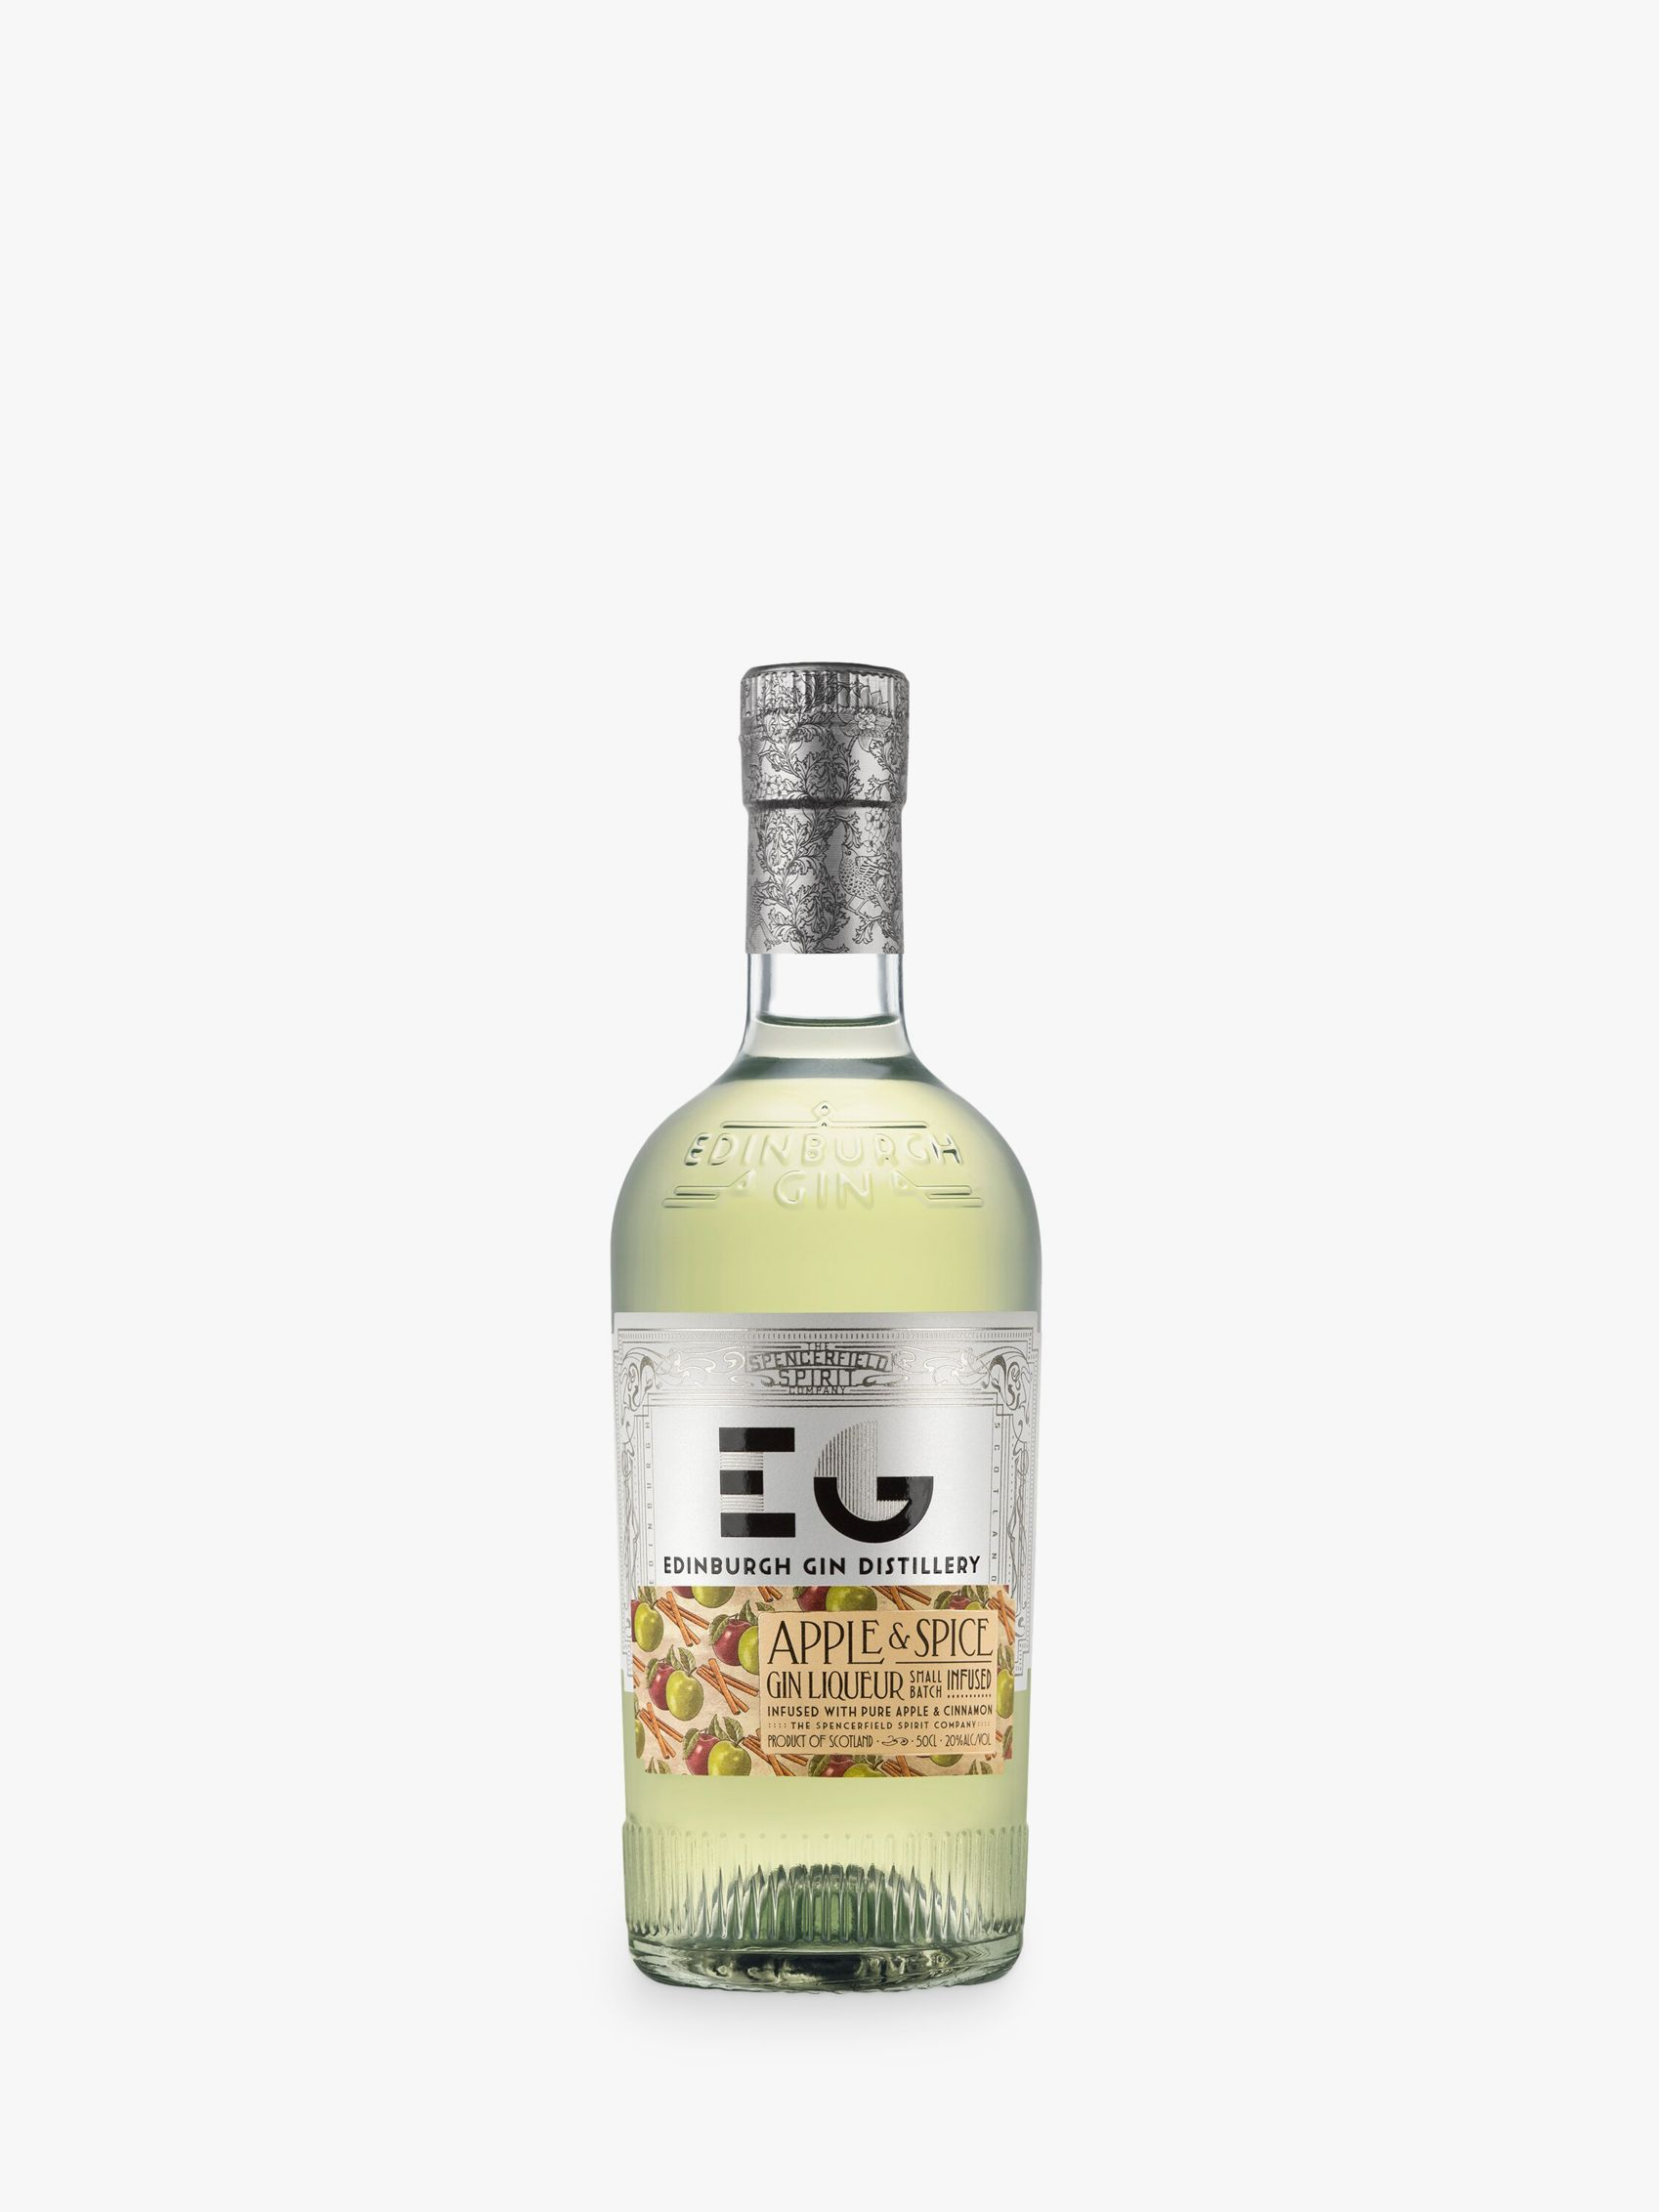 Edinburgh Gin Apple & Spice